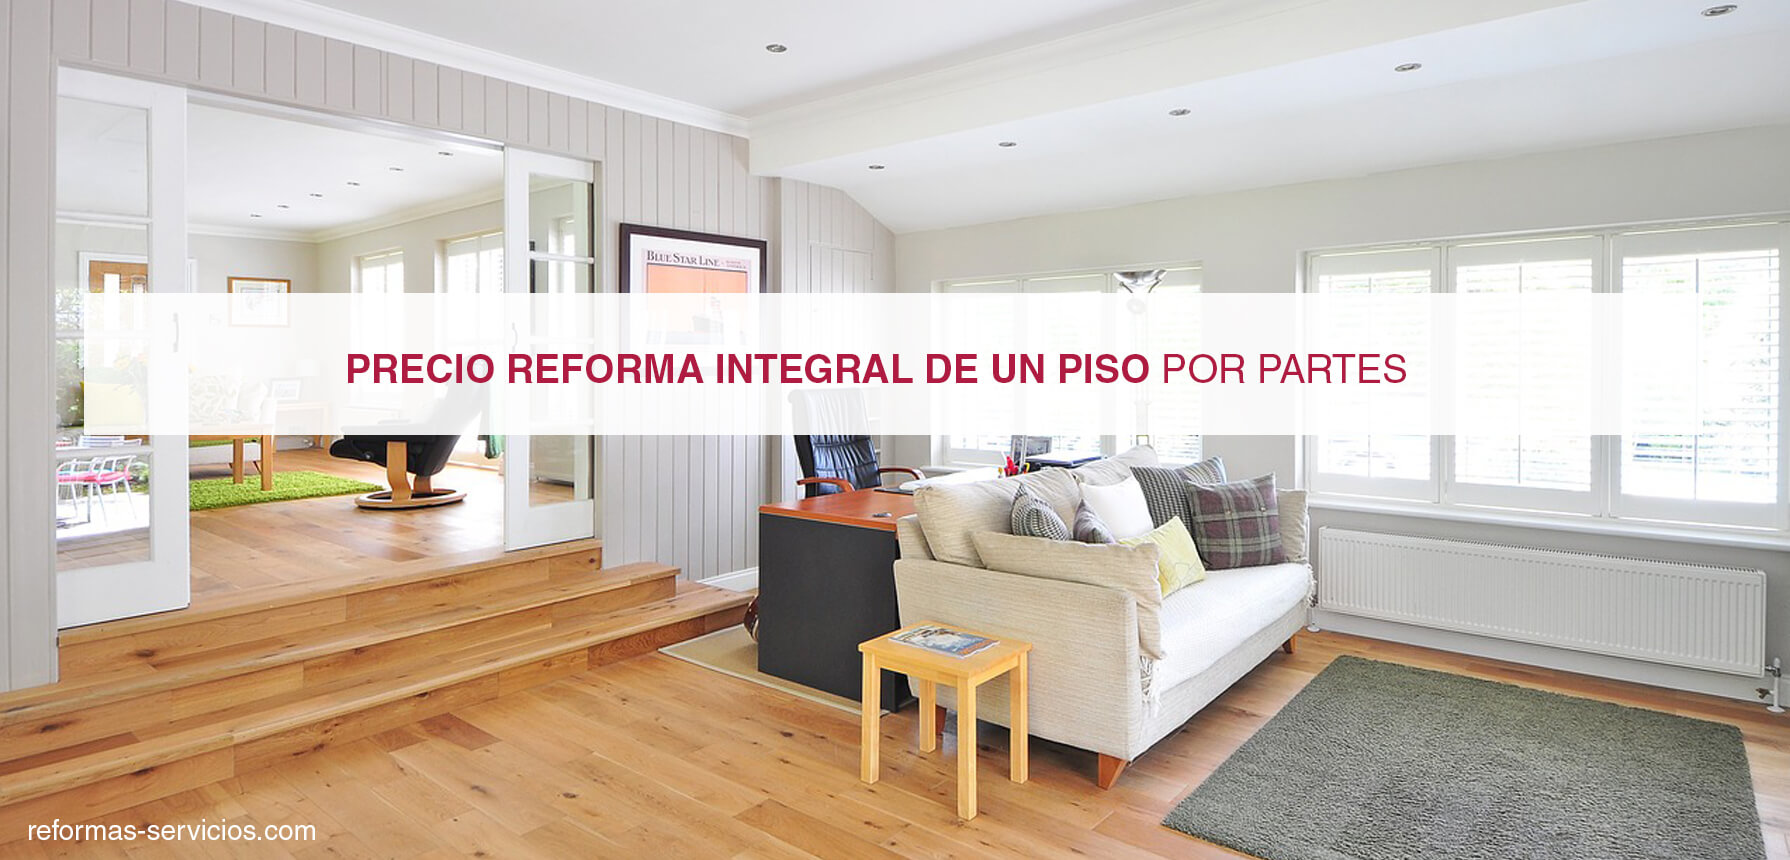 Reforma integral piso for Ideas para reformar un piso viejo